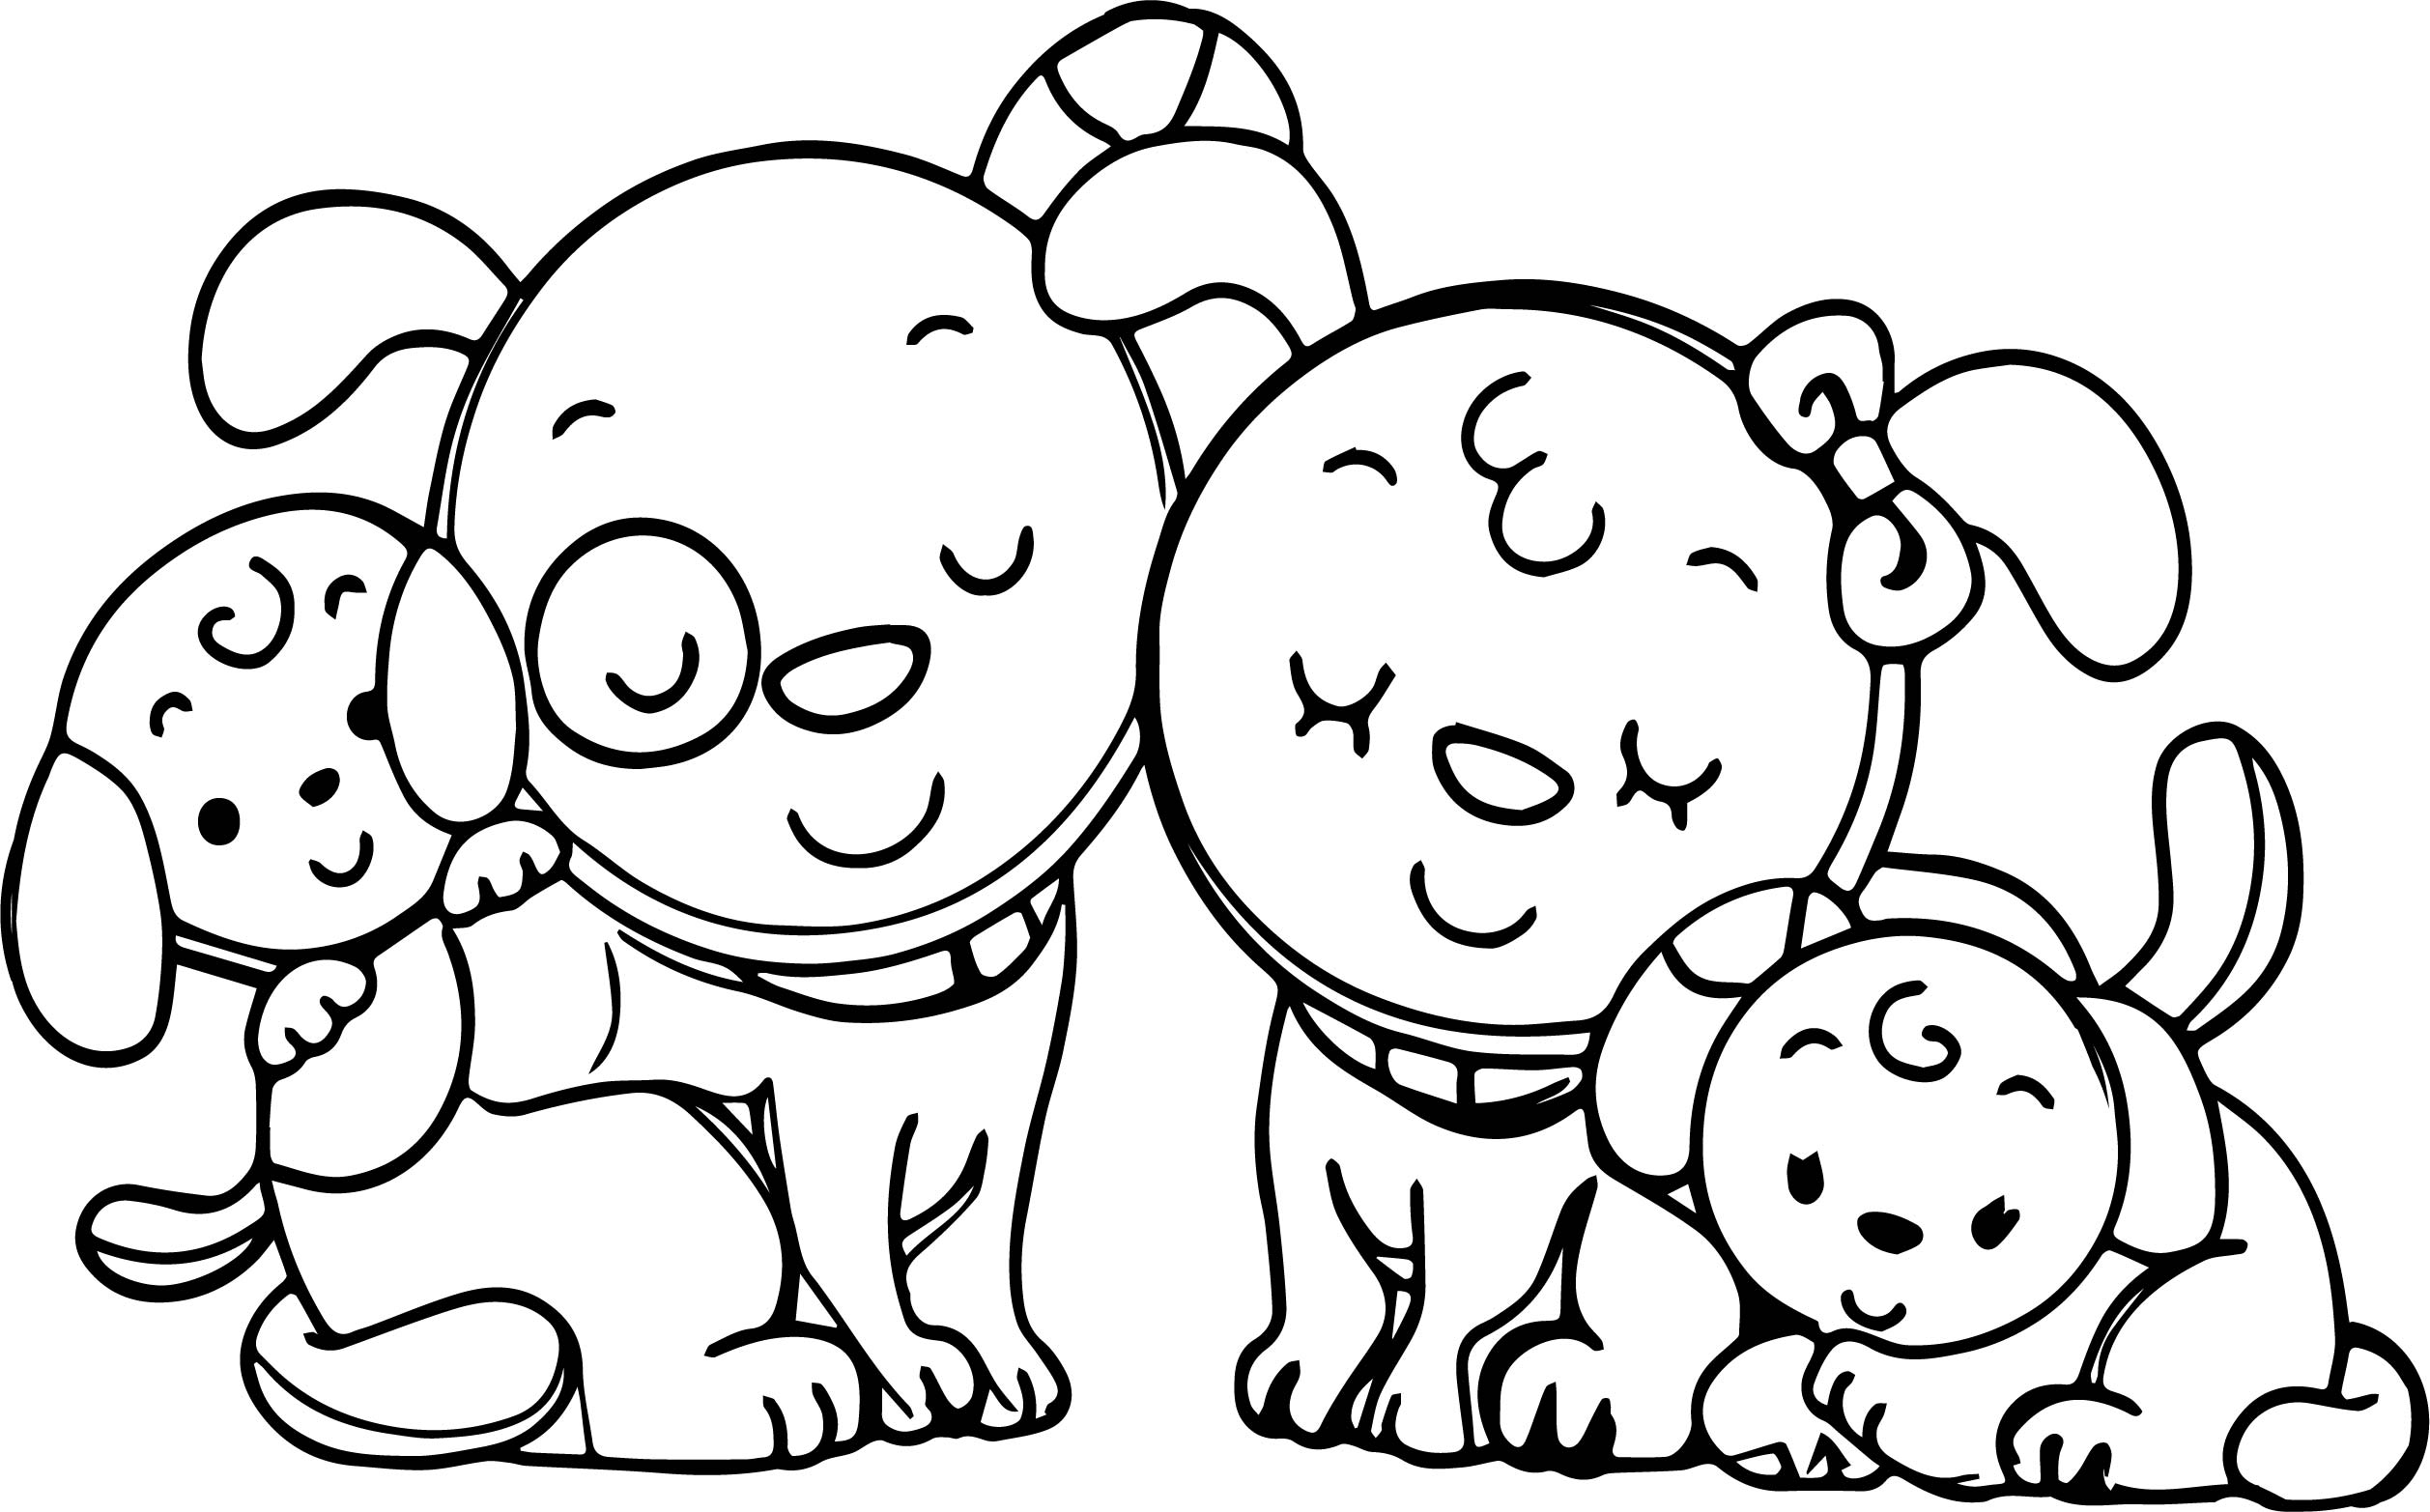 free online family coloring pages - photo#13